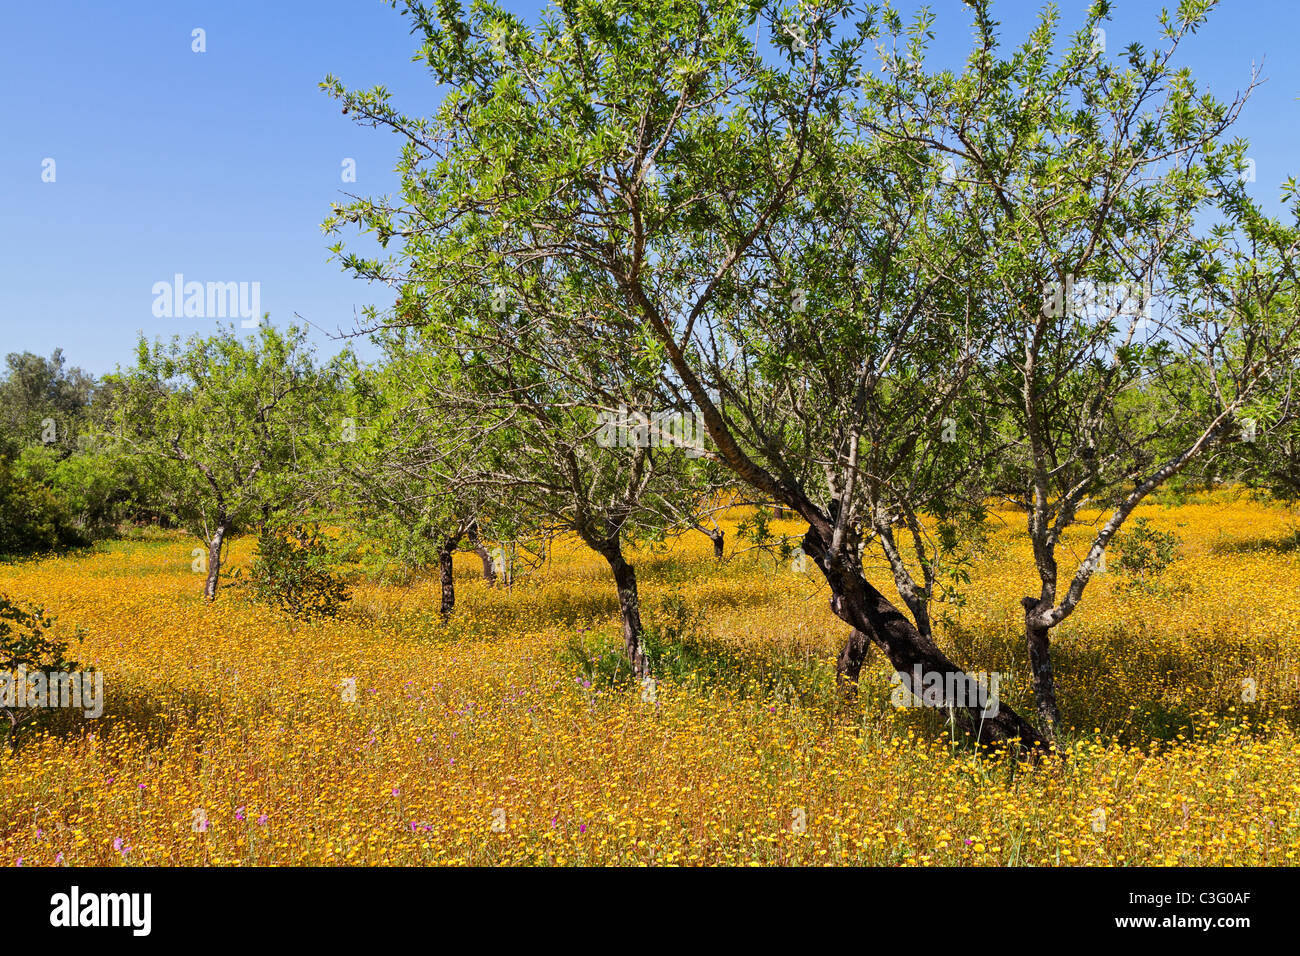 An olive grove with a yellow carpet of field marigolds in spring in the Algarve, Portugal Stock Photo